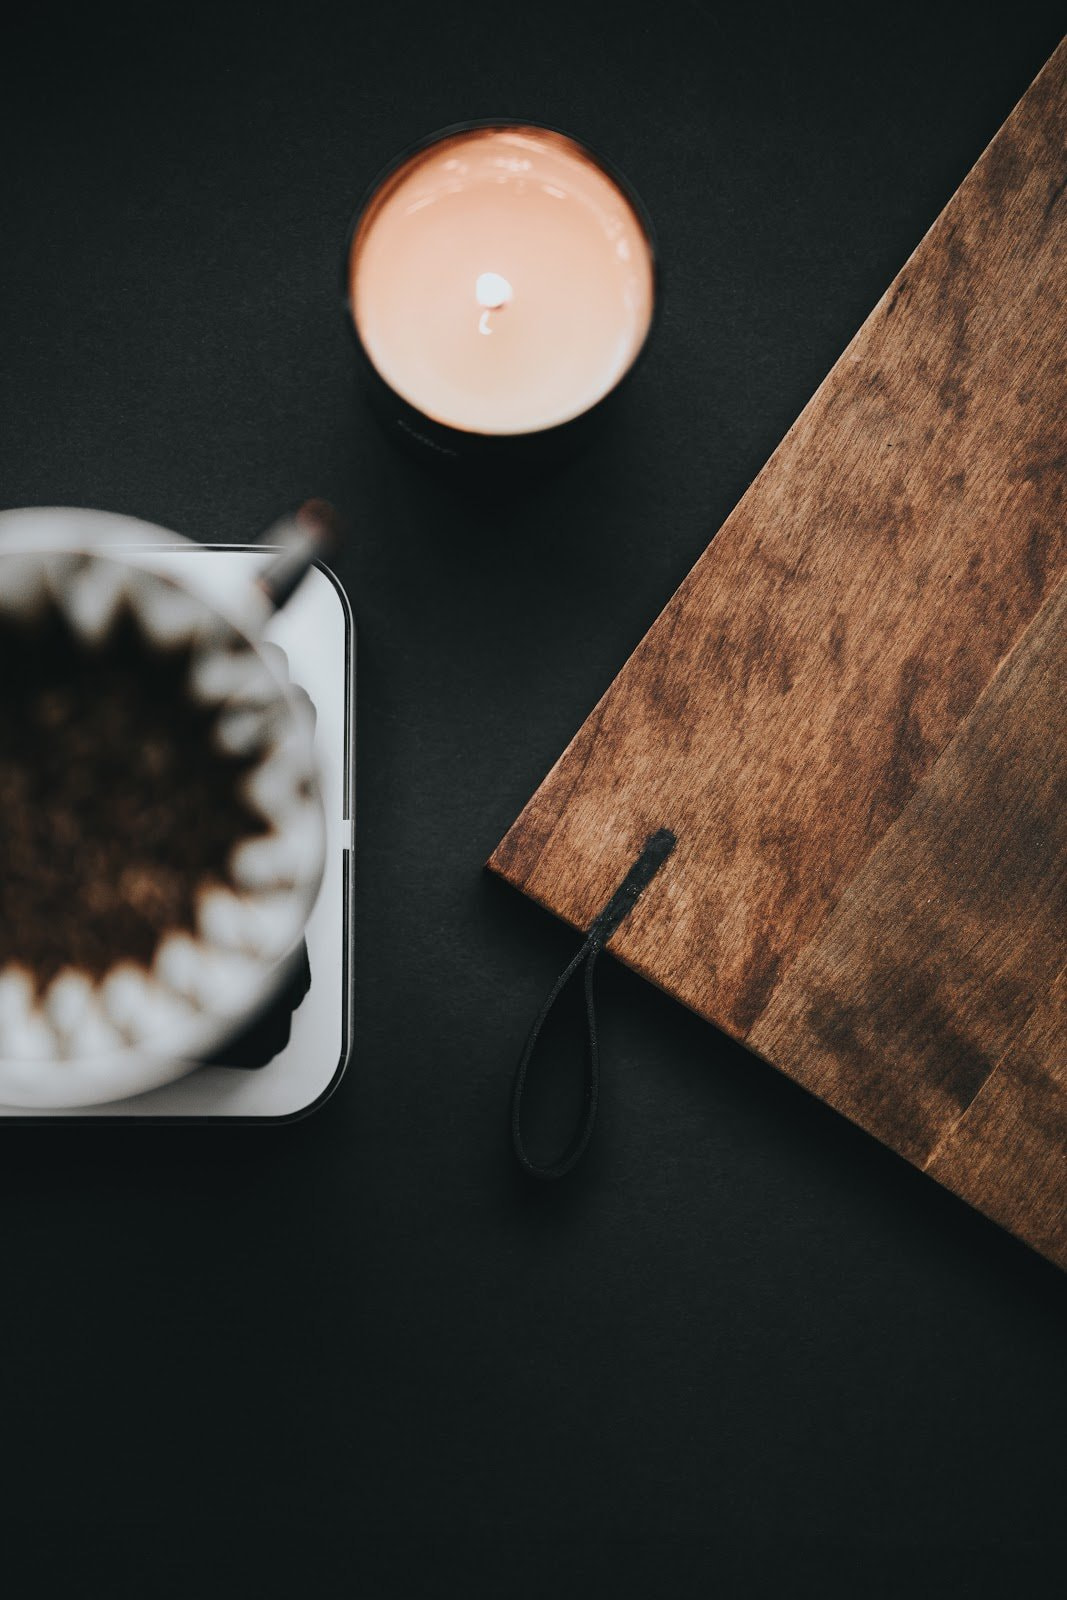 Candle, drip coffee and wooden tray by Nathan Dumlao